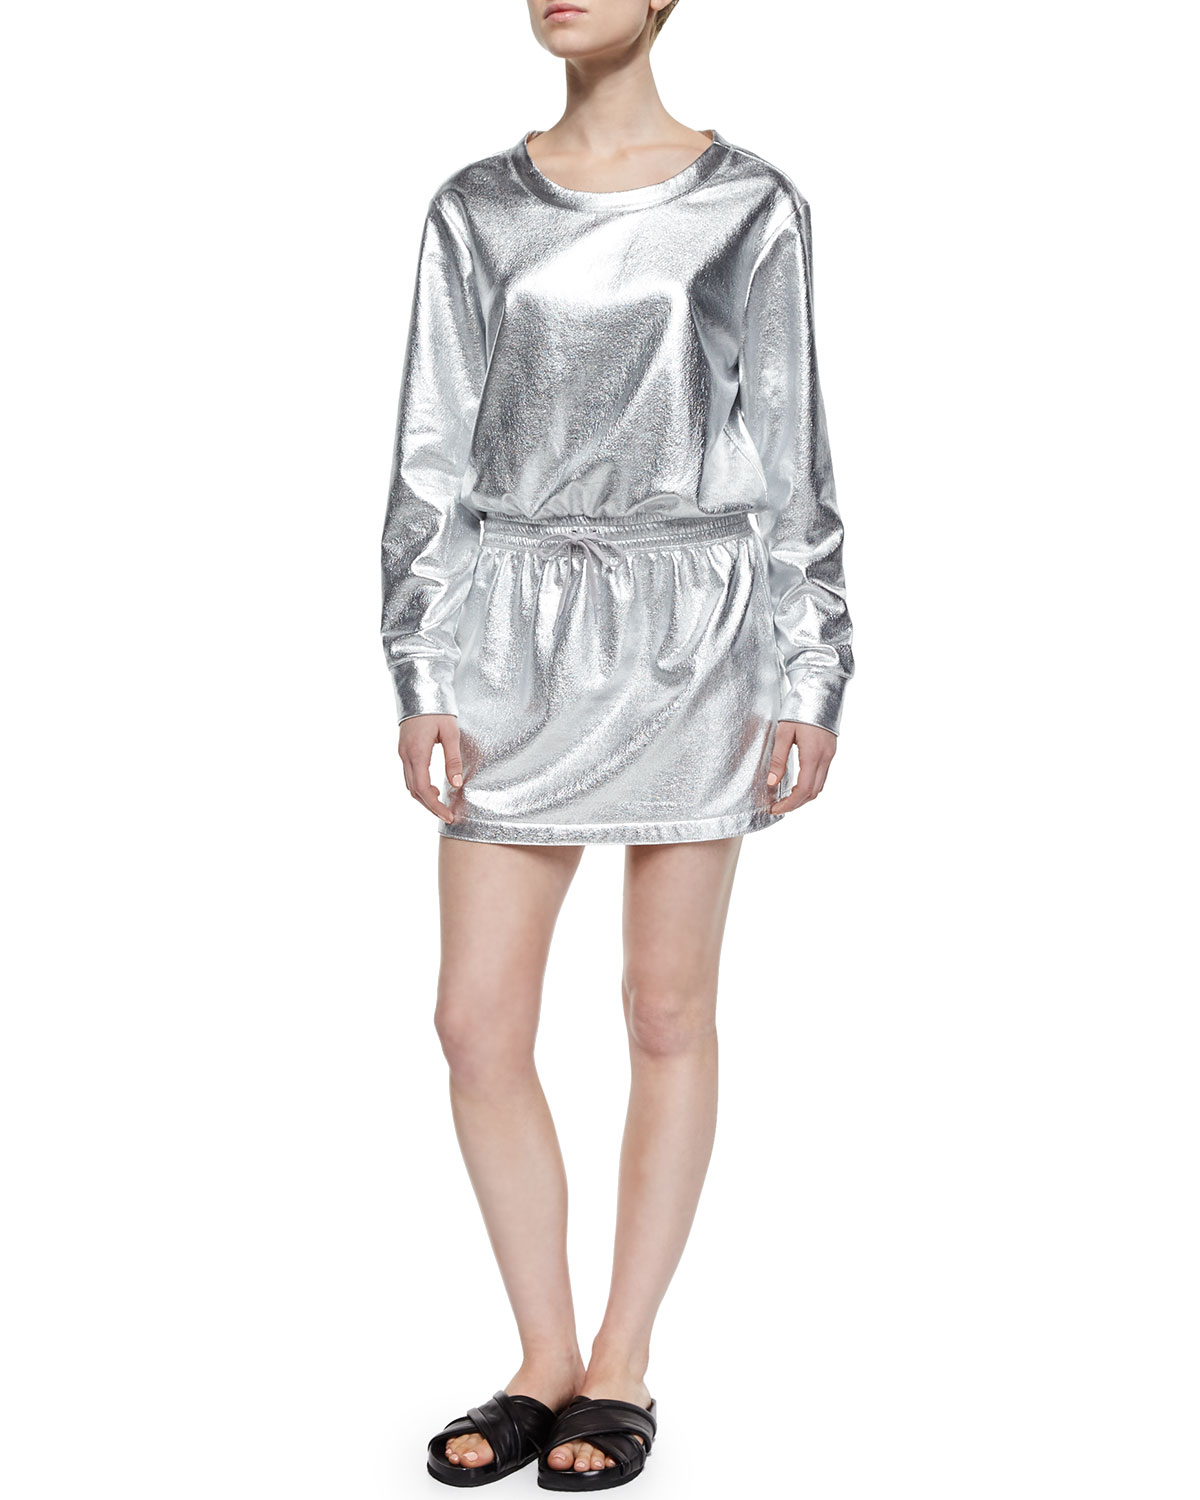 Norma kamali Boyfriend Sweater Dress in Metallic | Lyst